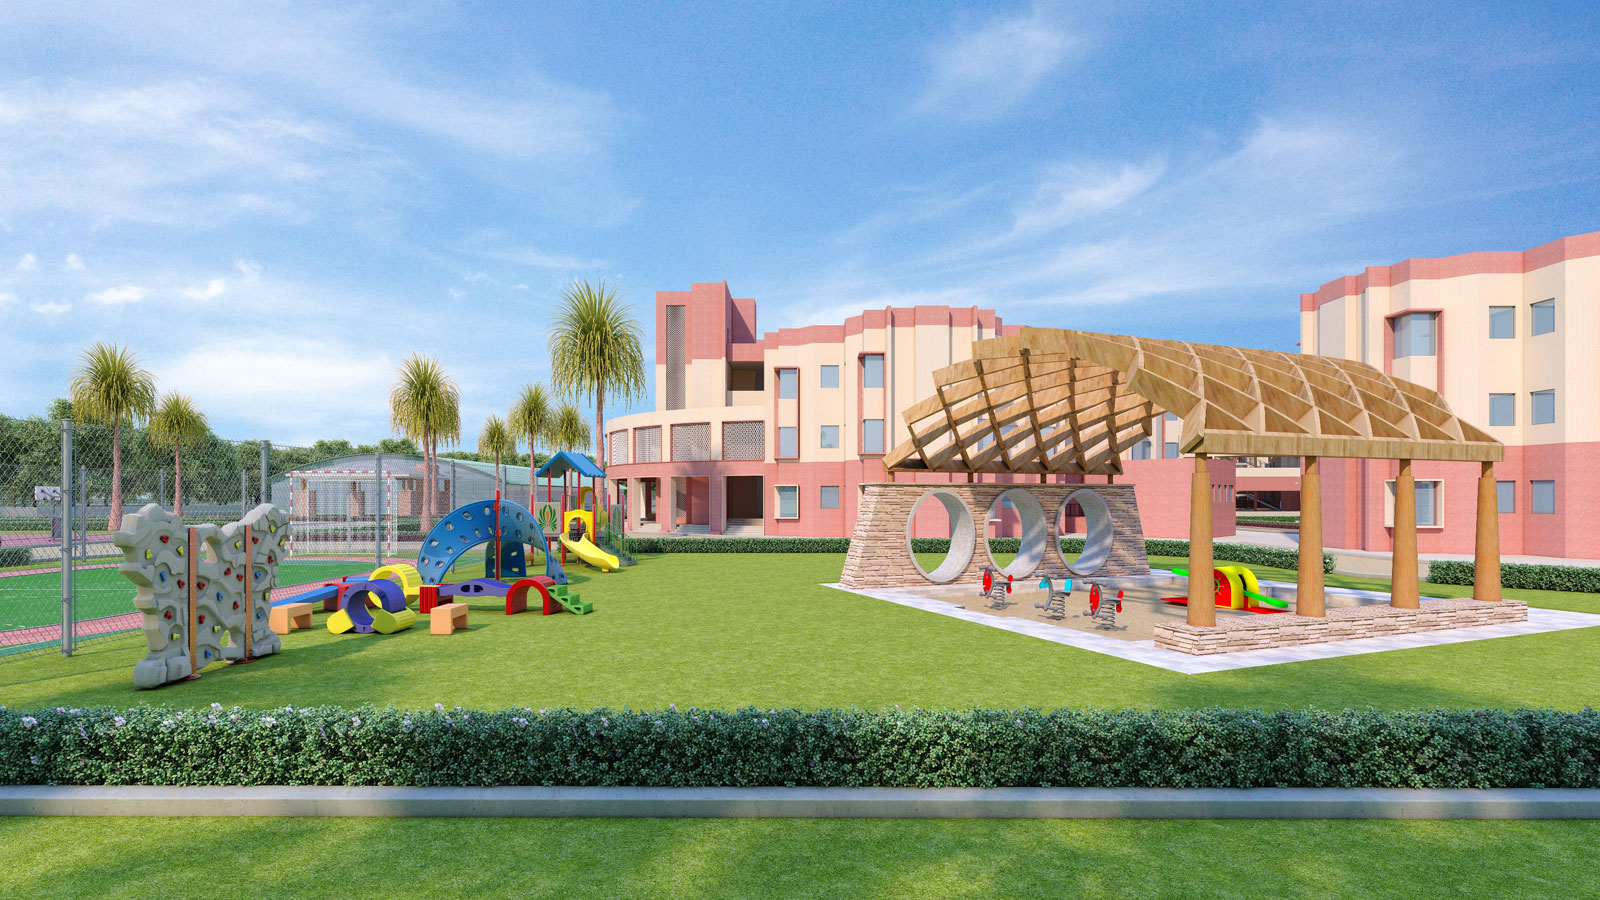 BEST ARCHITECTS AND DESIGN SERVICES FOR EXISTING SCHOOL FACE LIFTING SERVICES